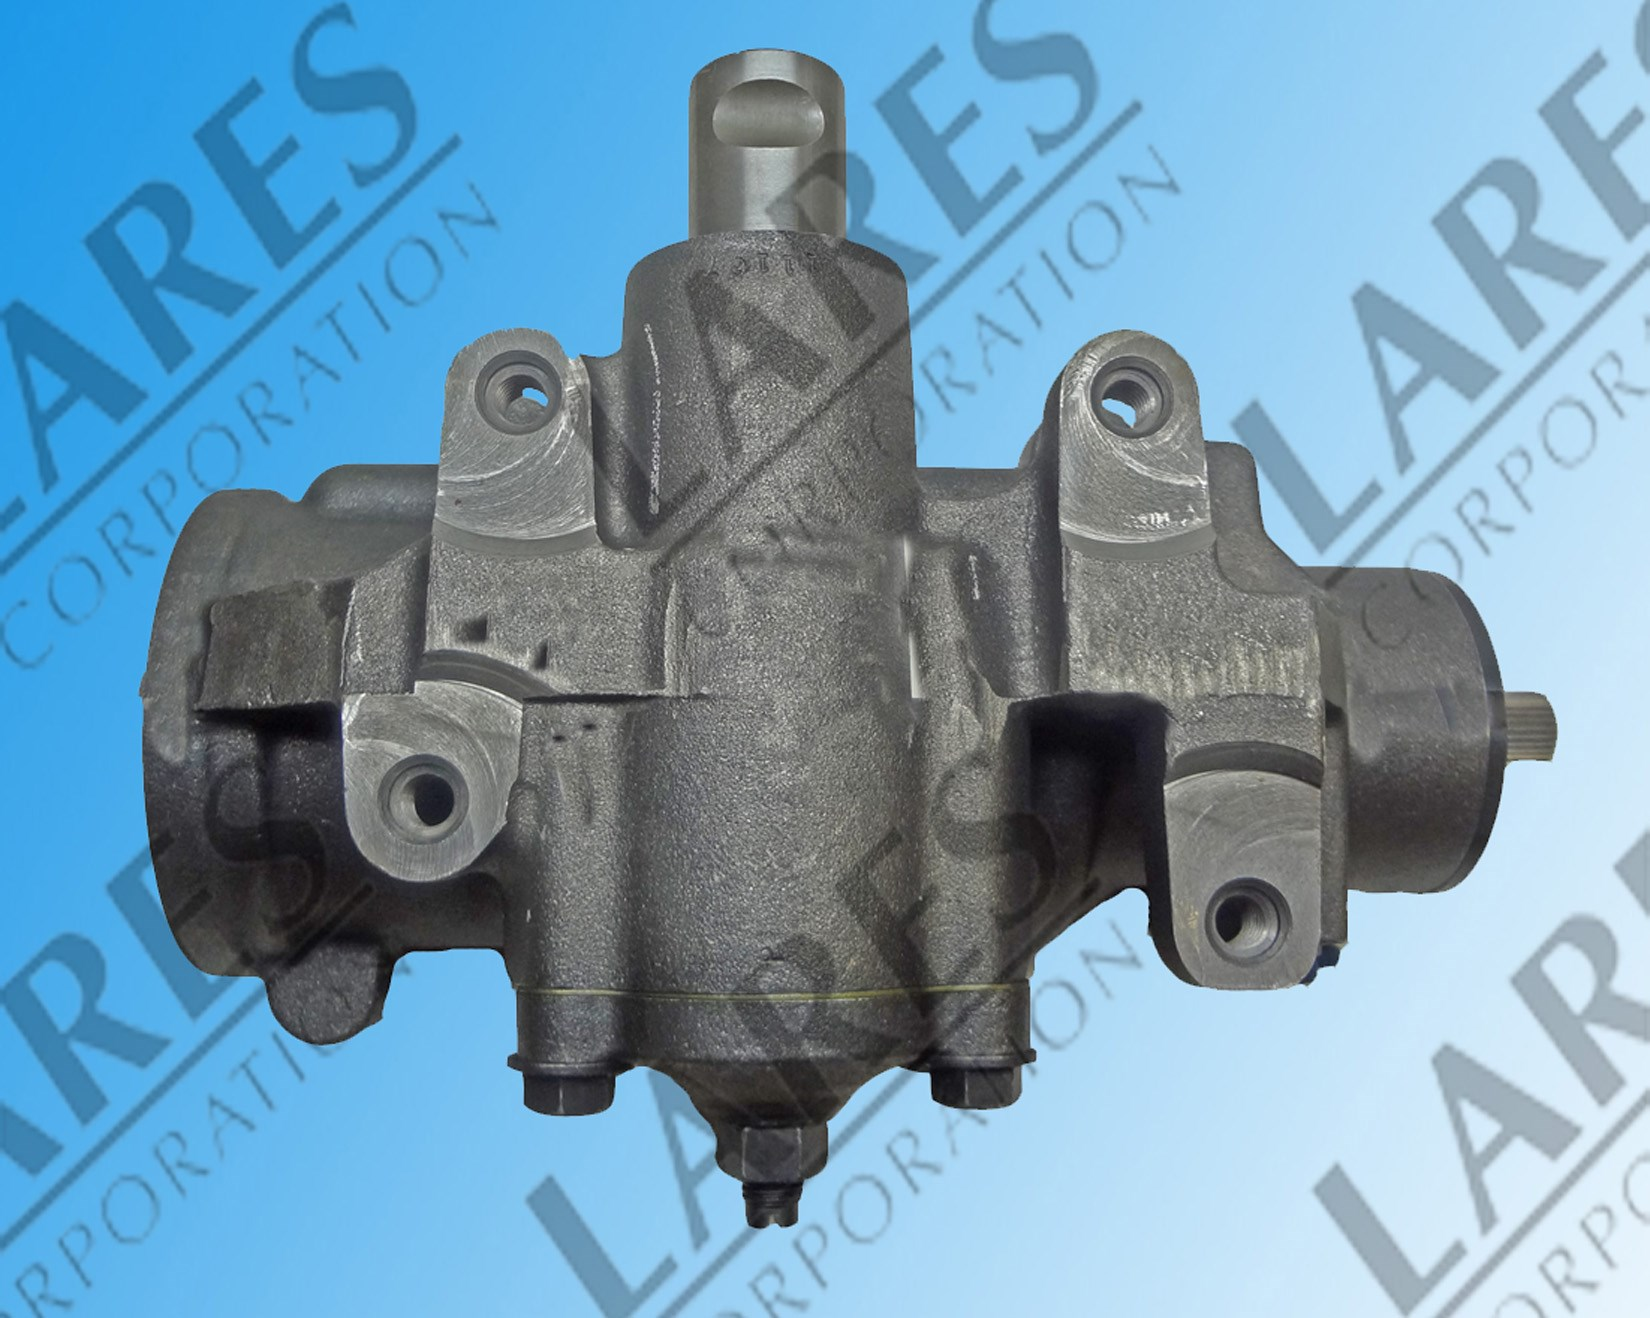 Power Steering Gear, Part No. 11263-a